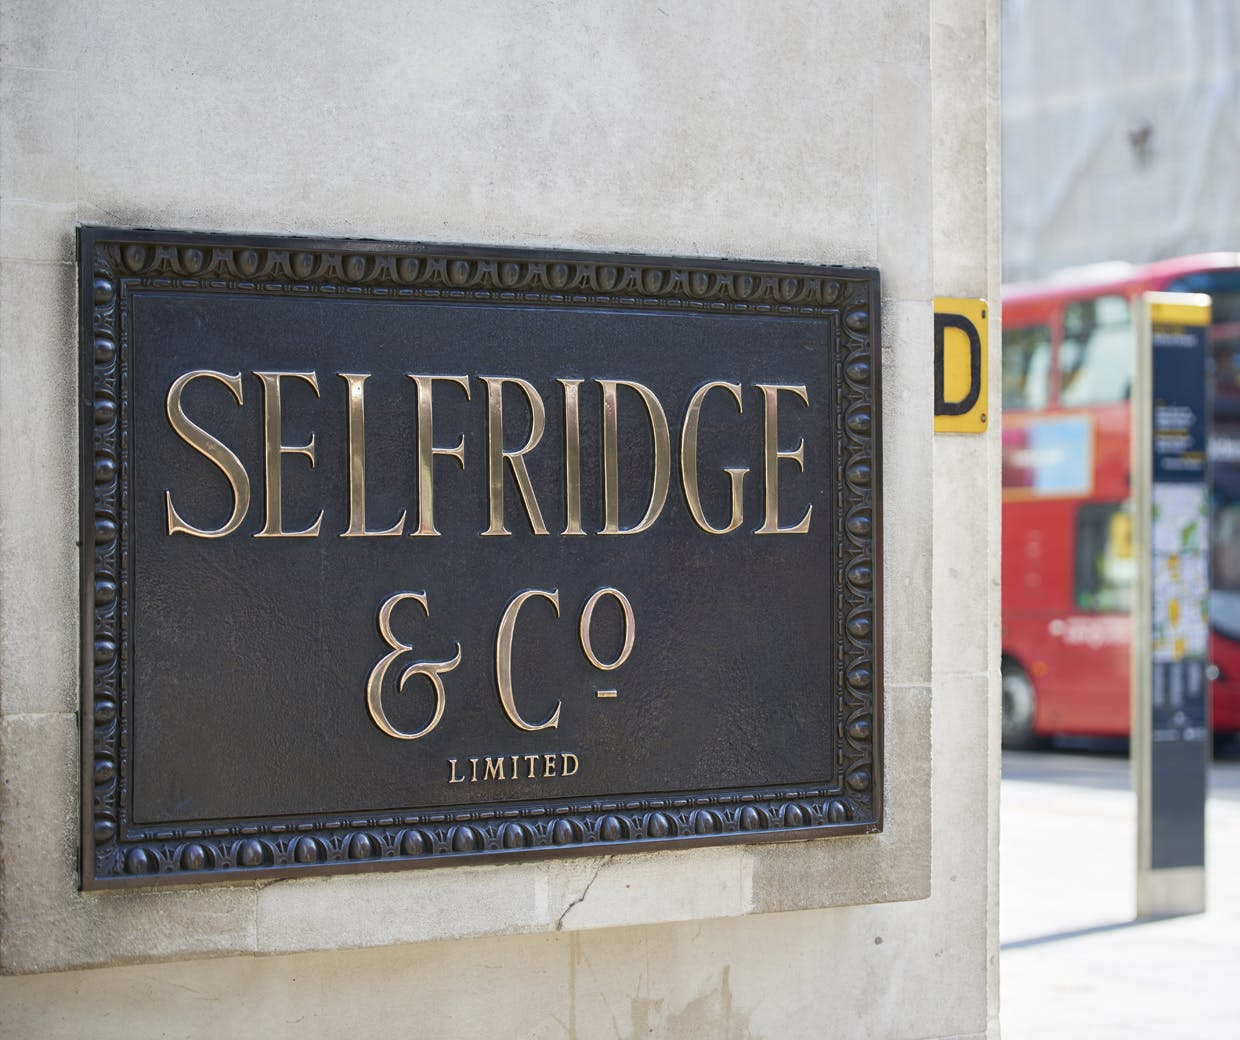 Brands should follow Selfridges' lead on palm oil to ensure long-term loyalty